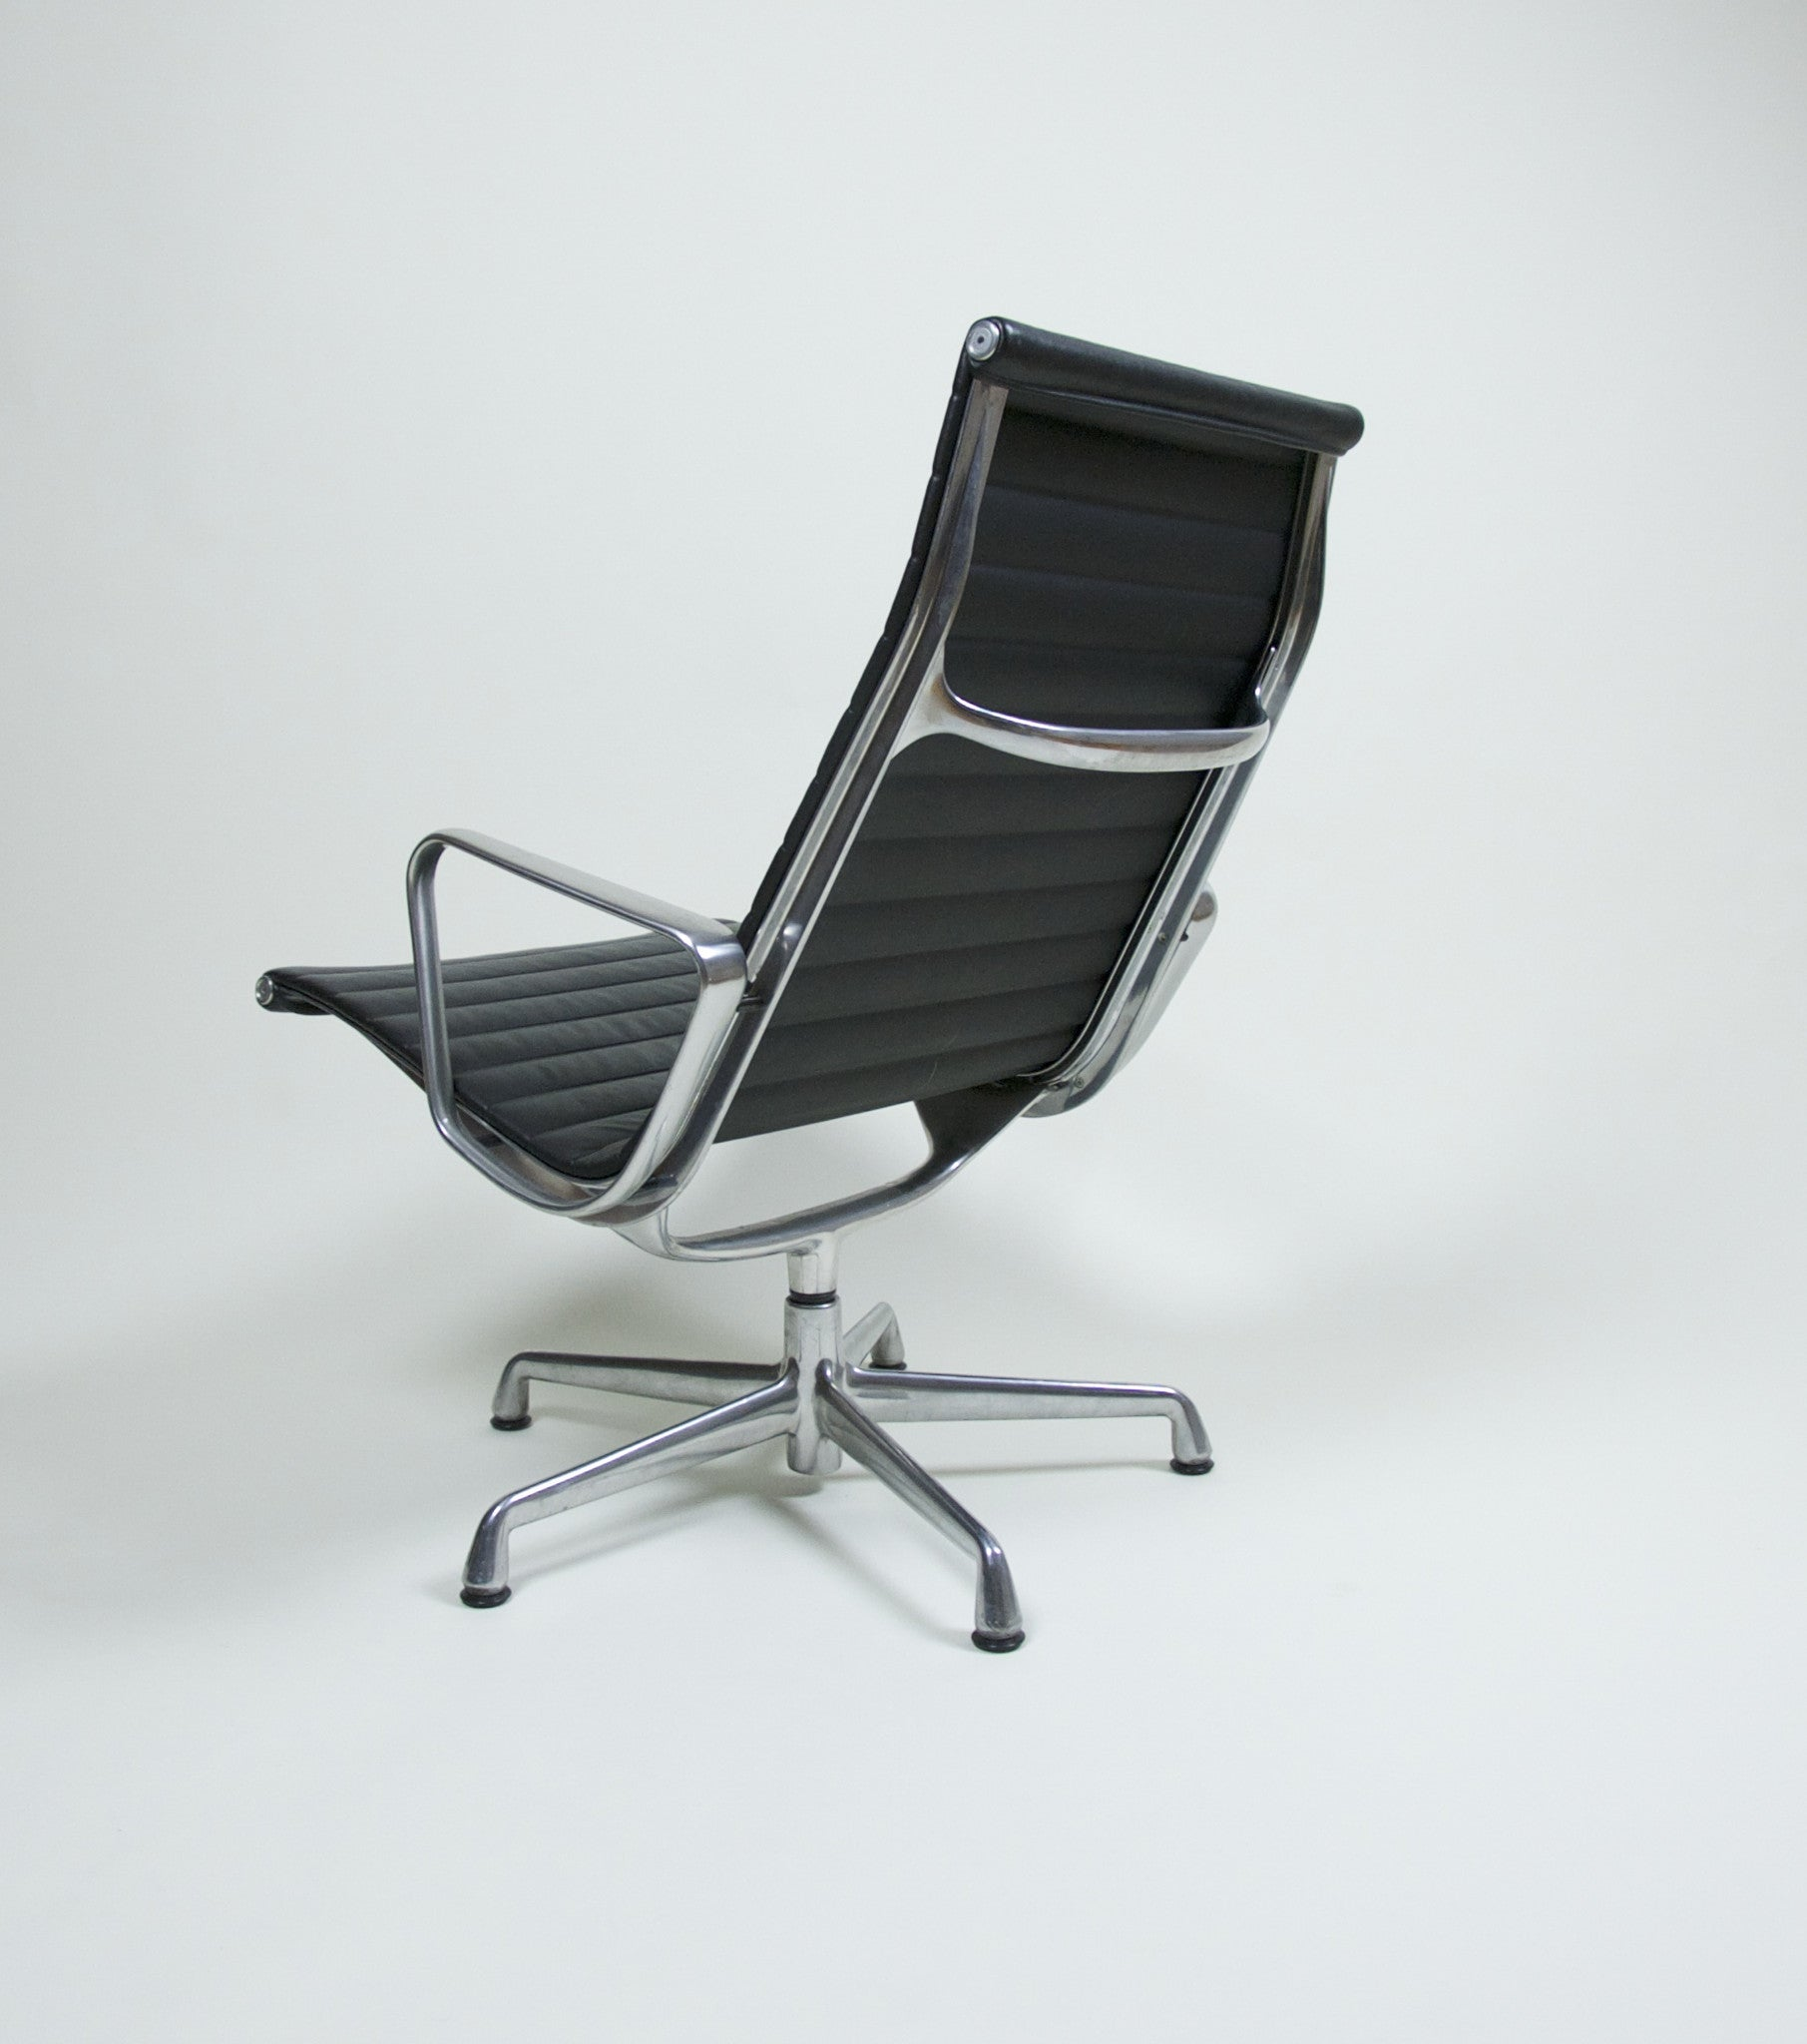 SOLD Eames Herman Miller Aluminum Group Lounge Chair